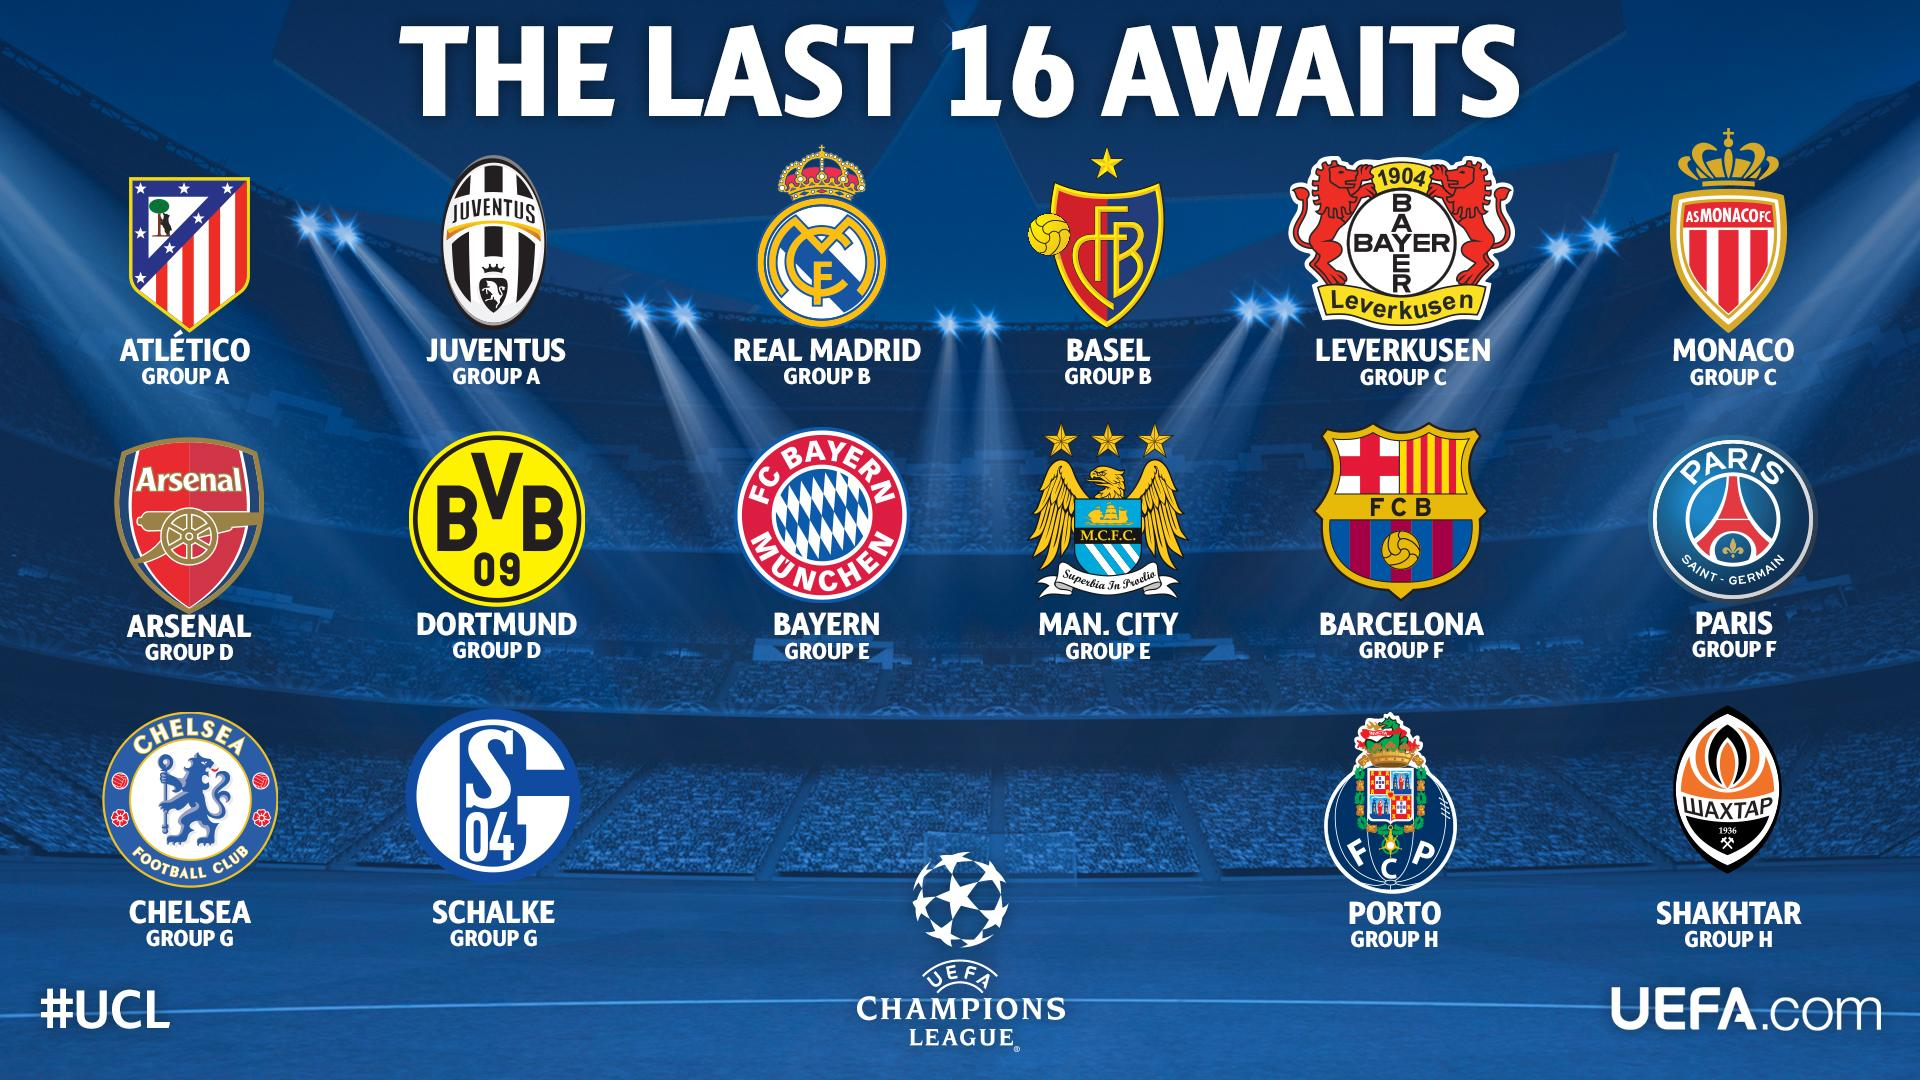 Uefa champions league round of 16 draw ign boards